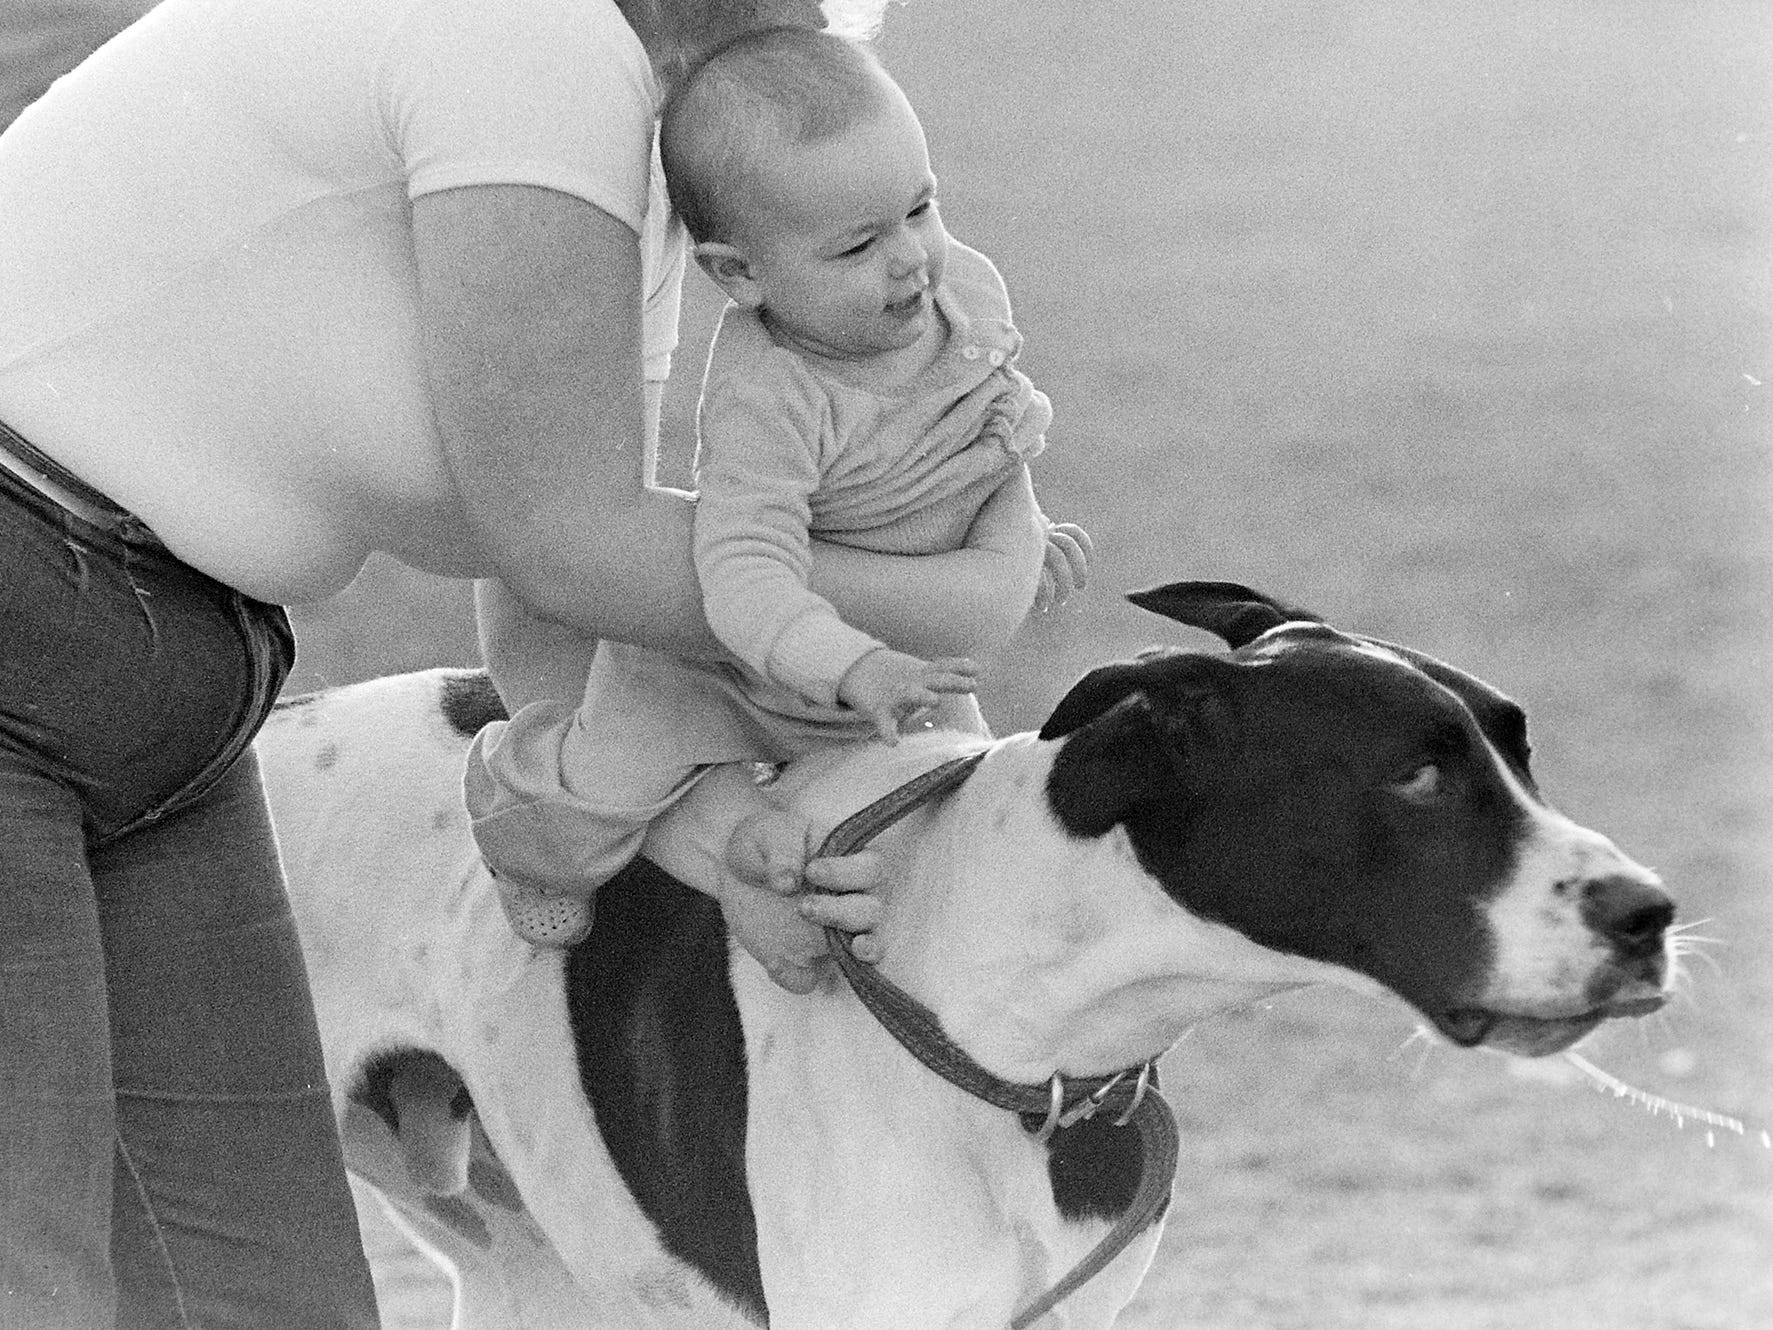 03/06/84